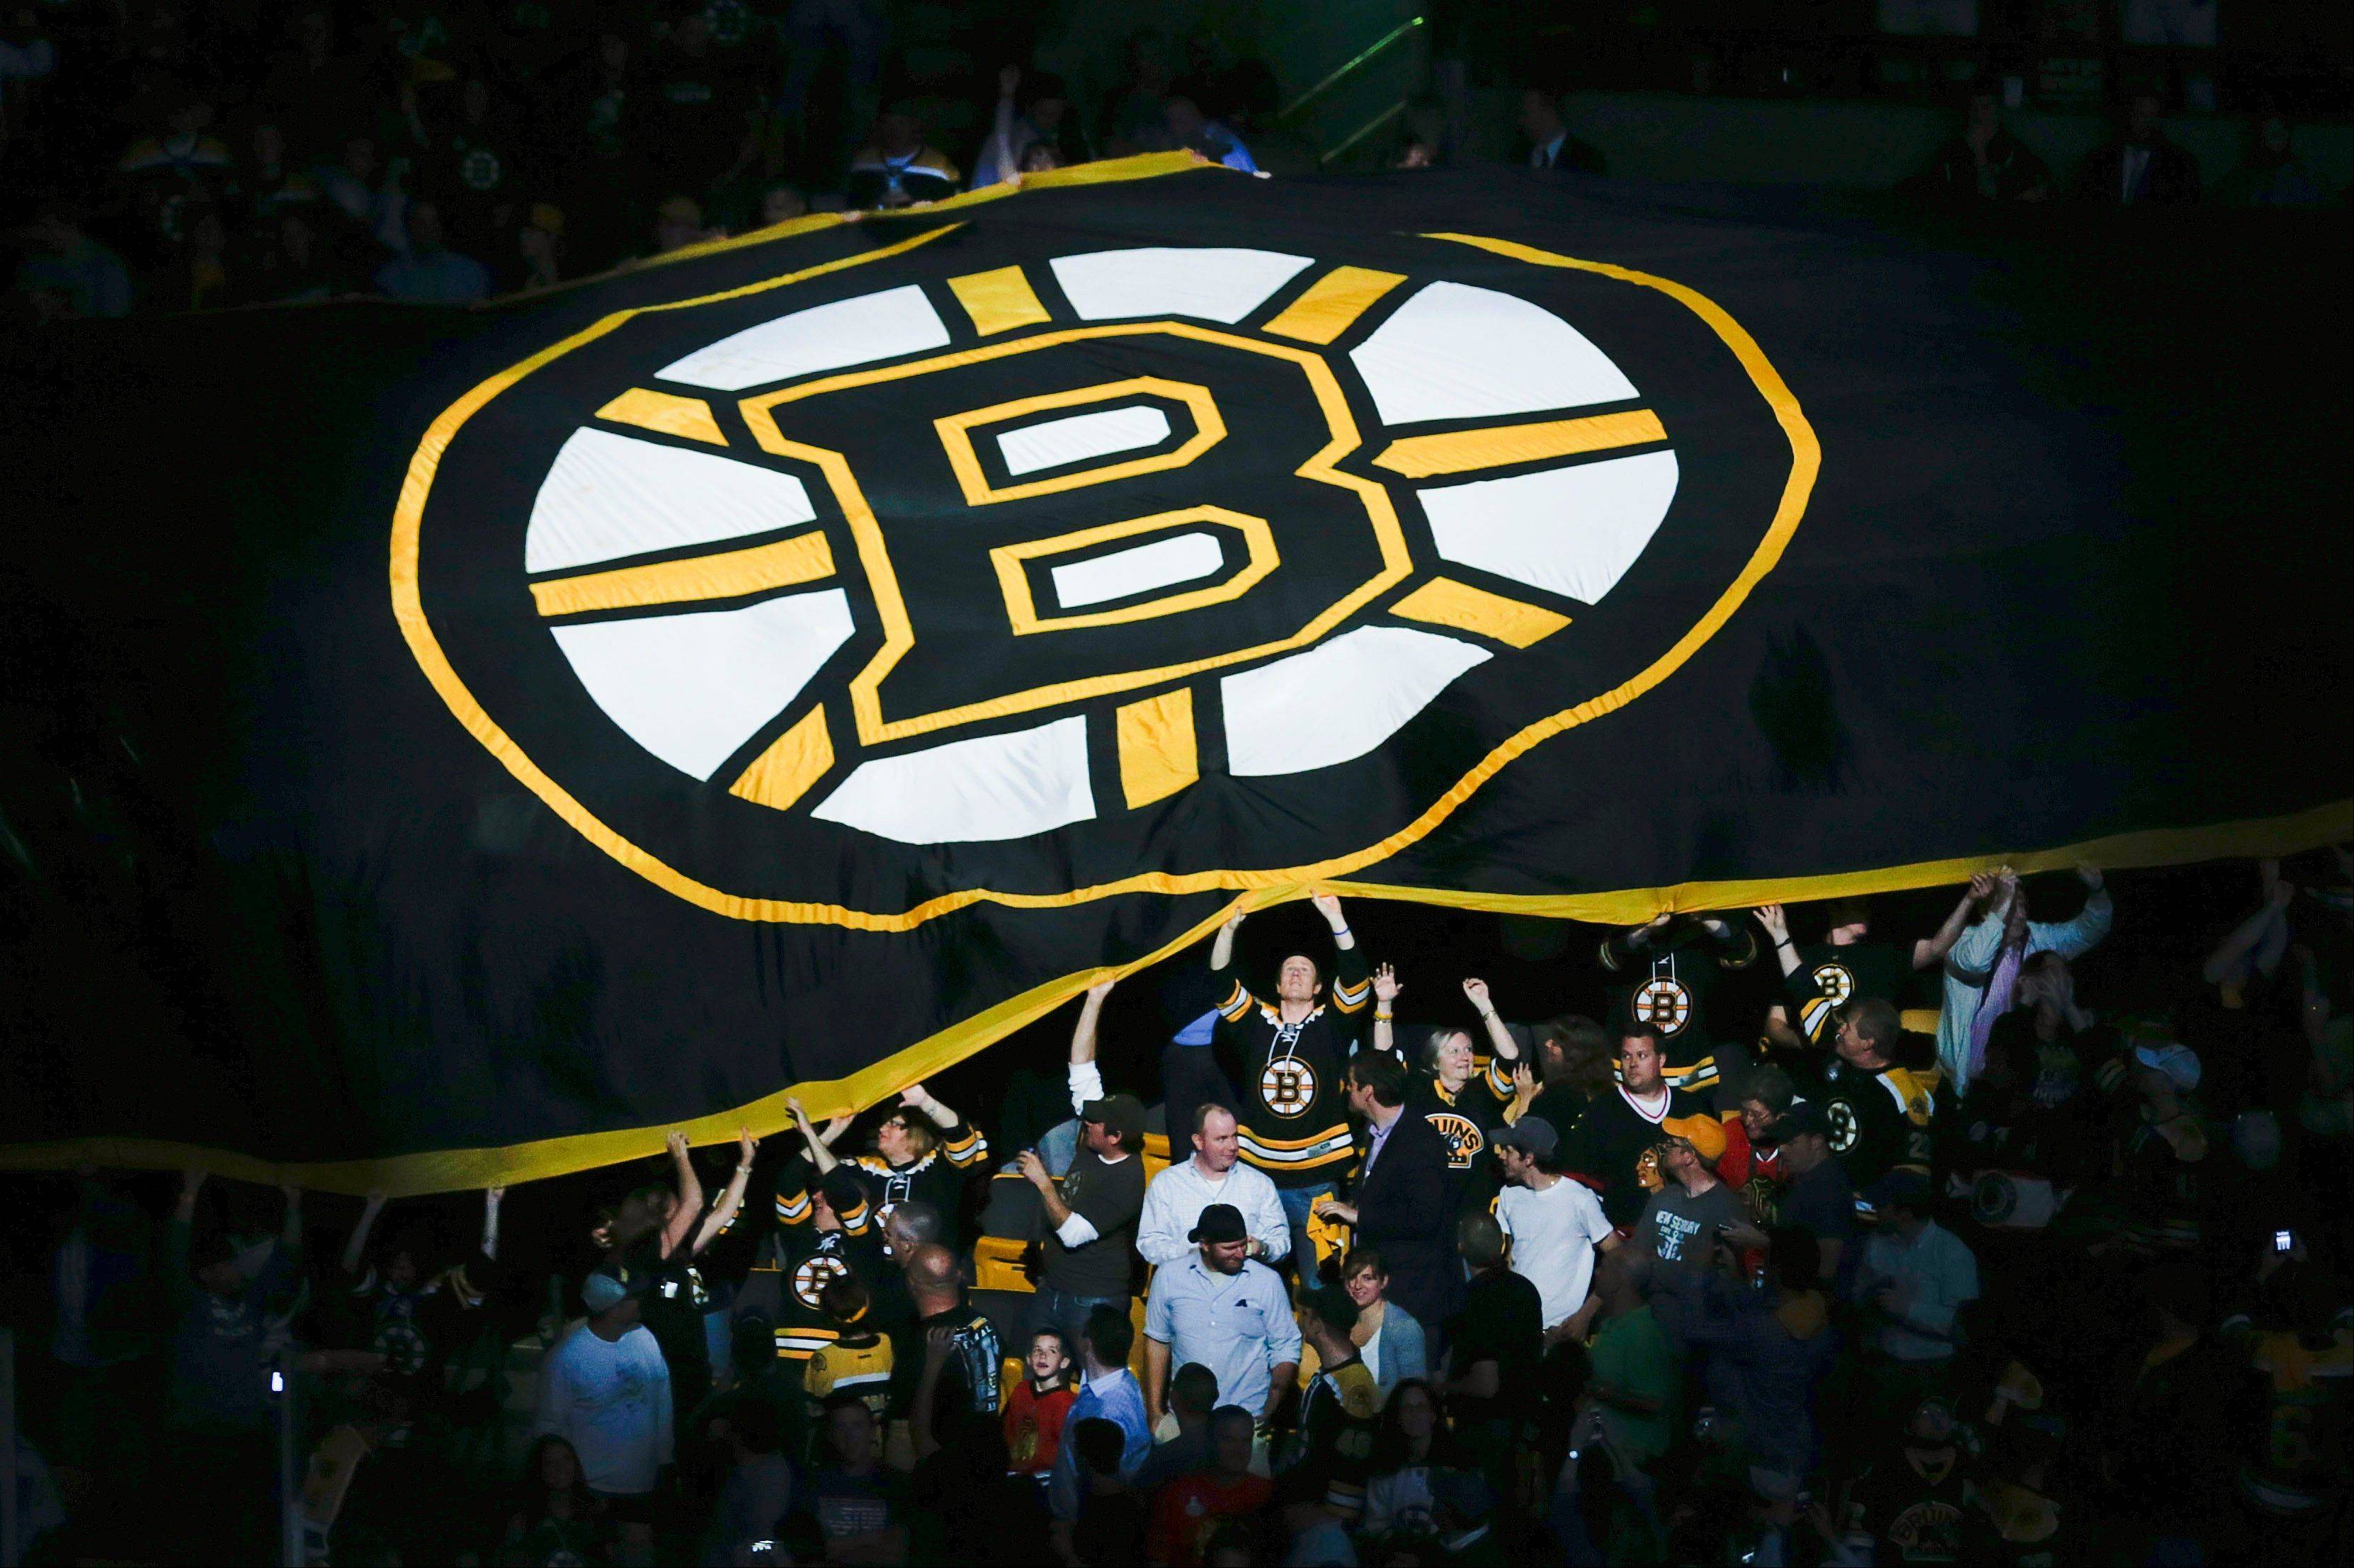 Fans pass a Boston Bruins banner through the stands before Wednesday's Game 4 of the Stanley Cup Final at TD Garden.